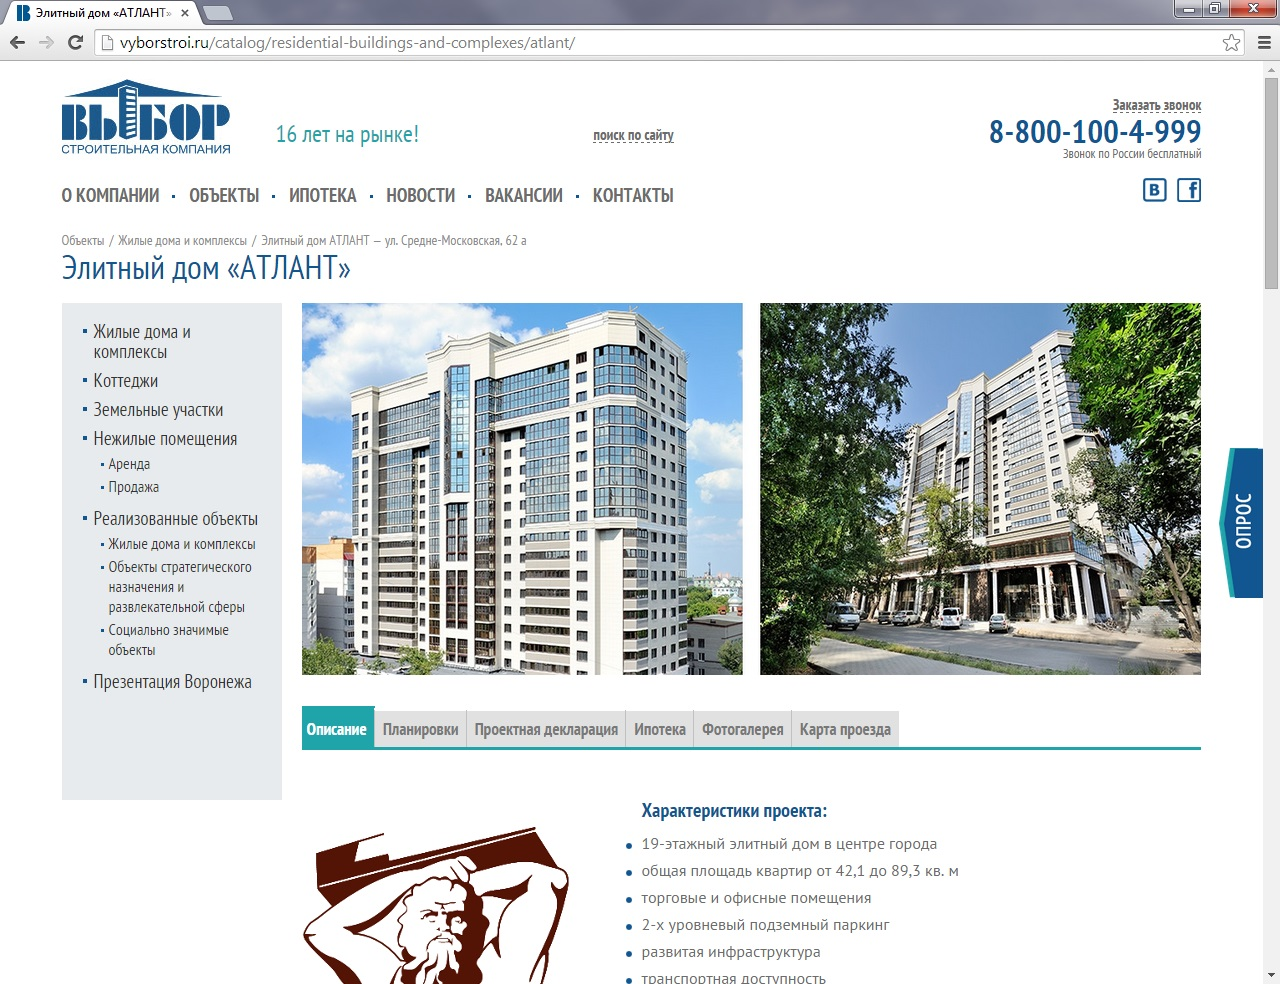 vyborstroi.ru/catalog/residential-buildings-and-complexes/atlant/